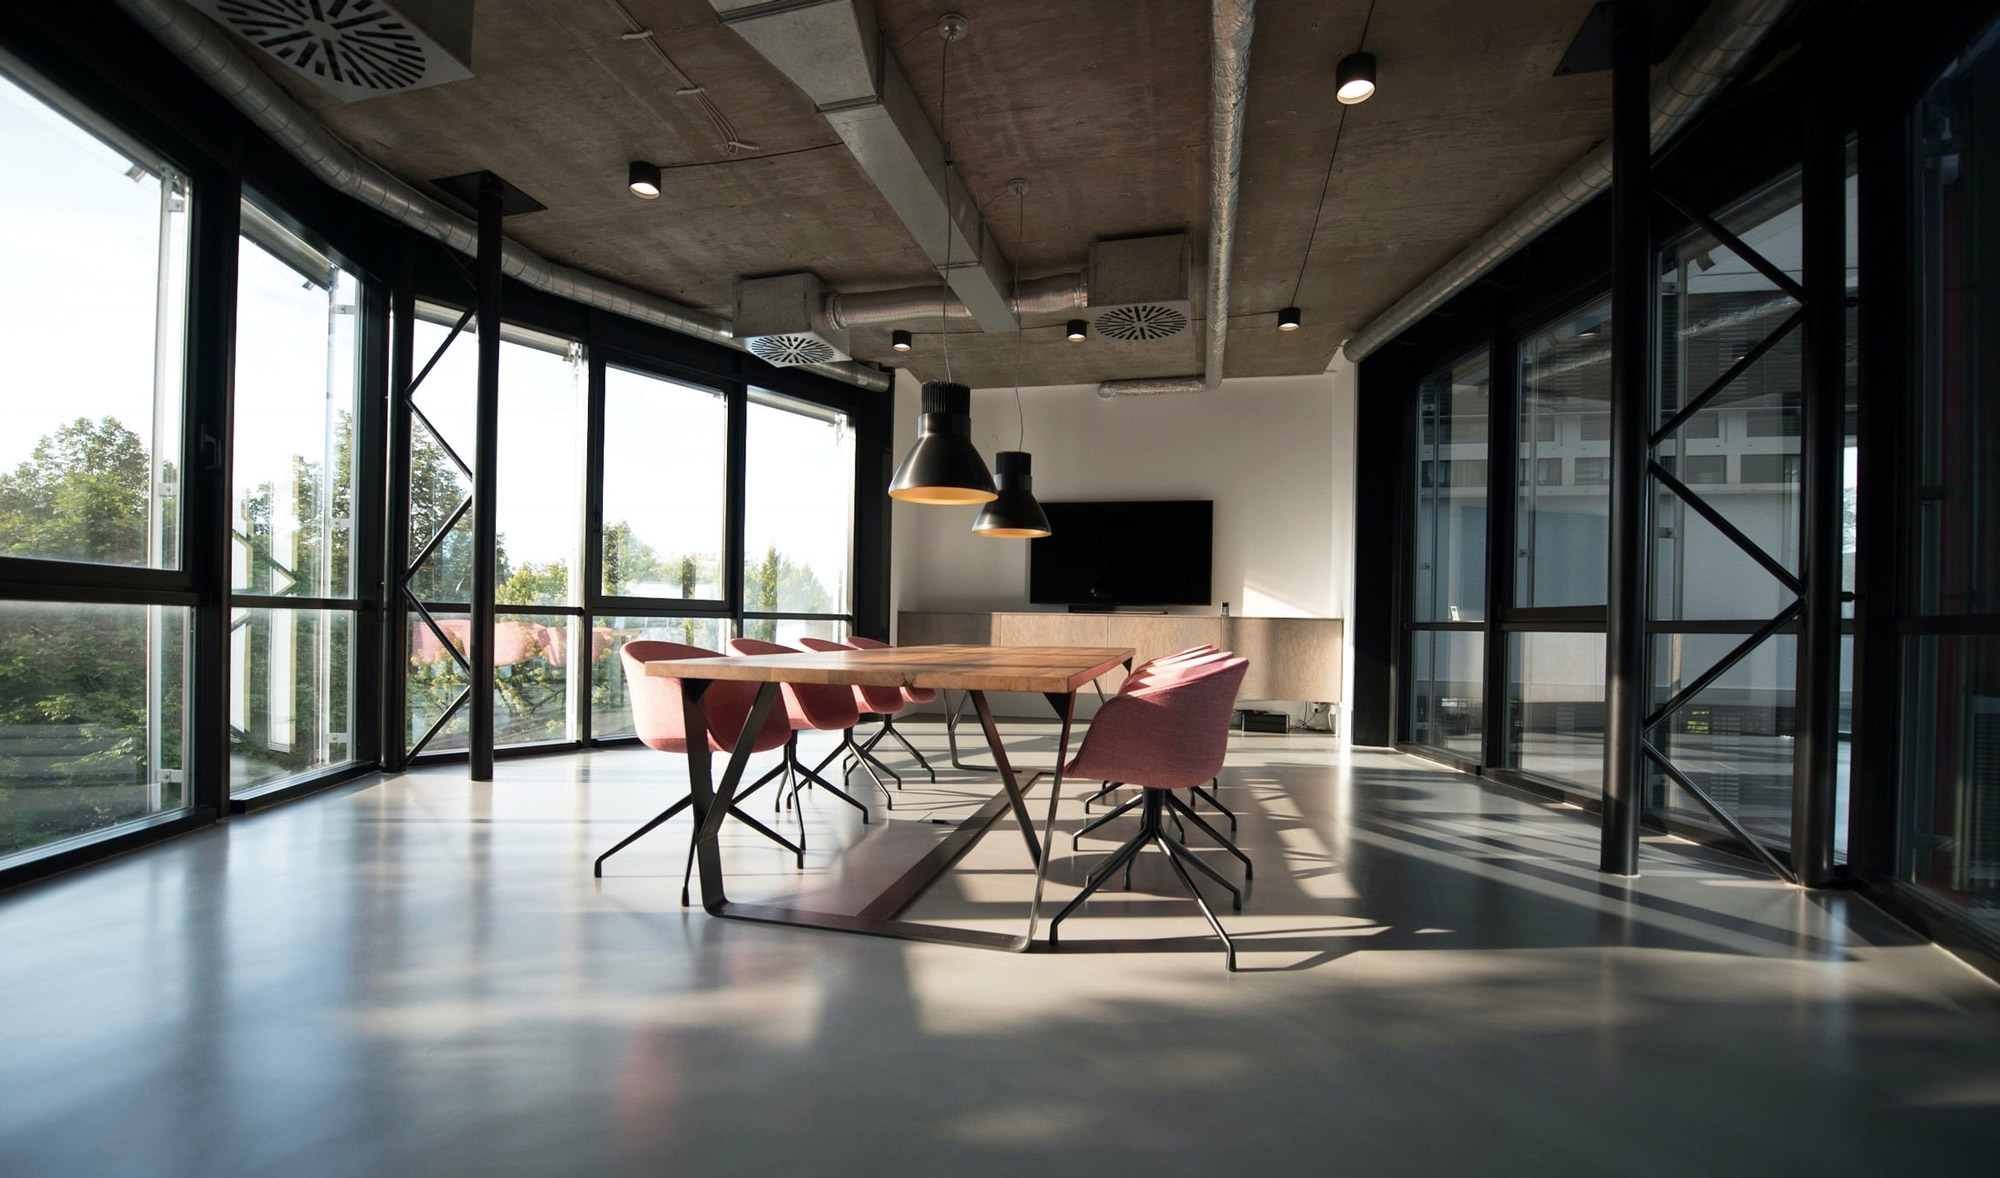 How to design a modern, innovative workplace for productivity and wellbeing